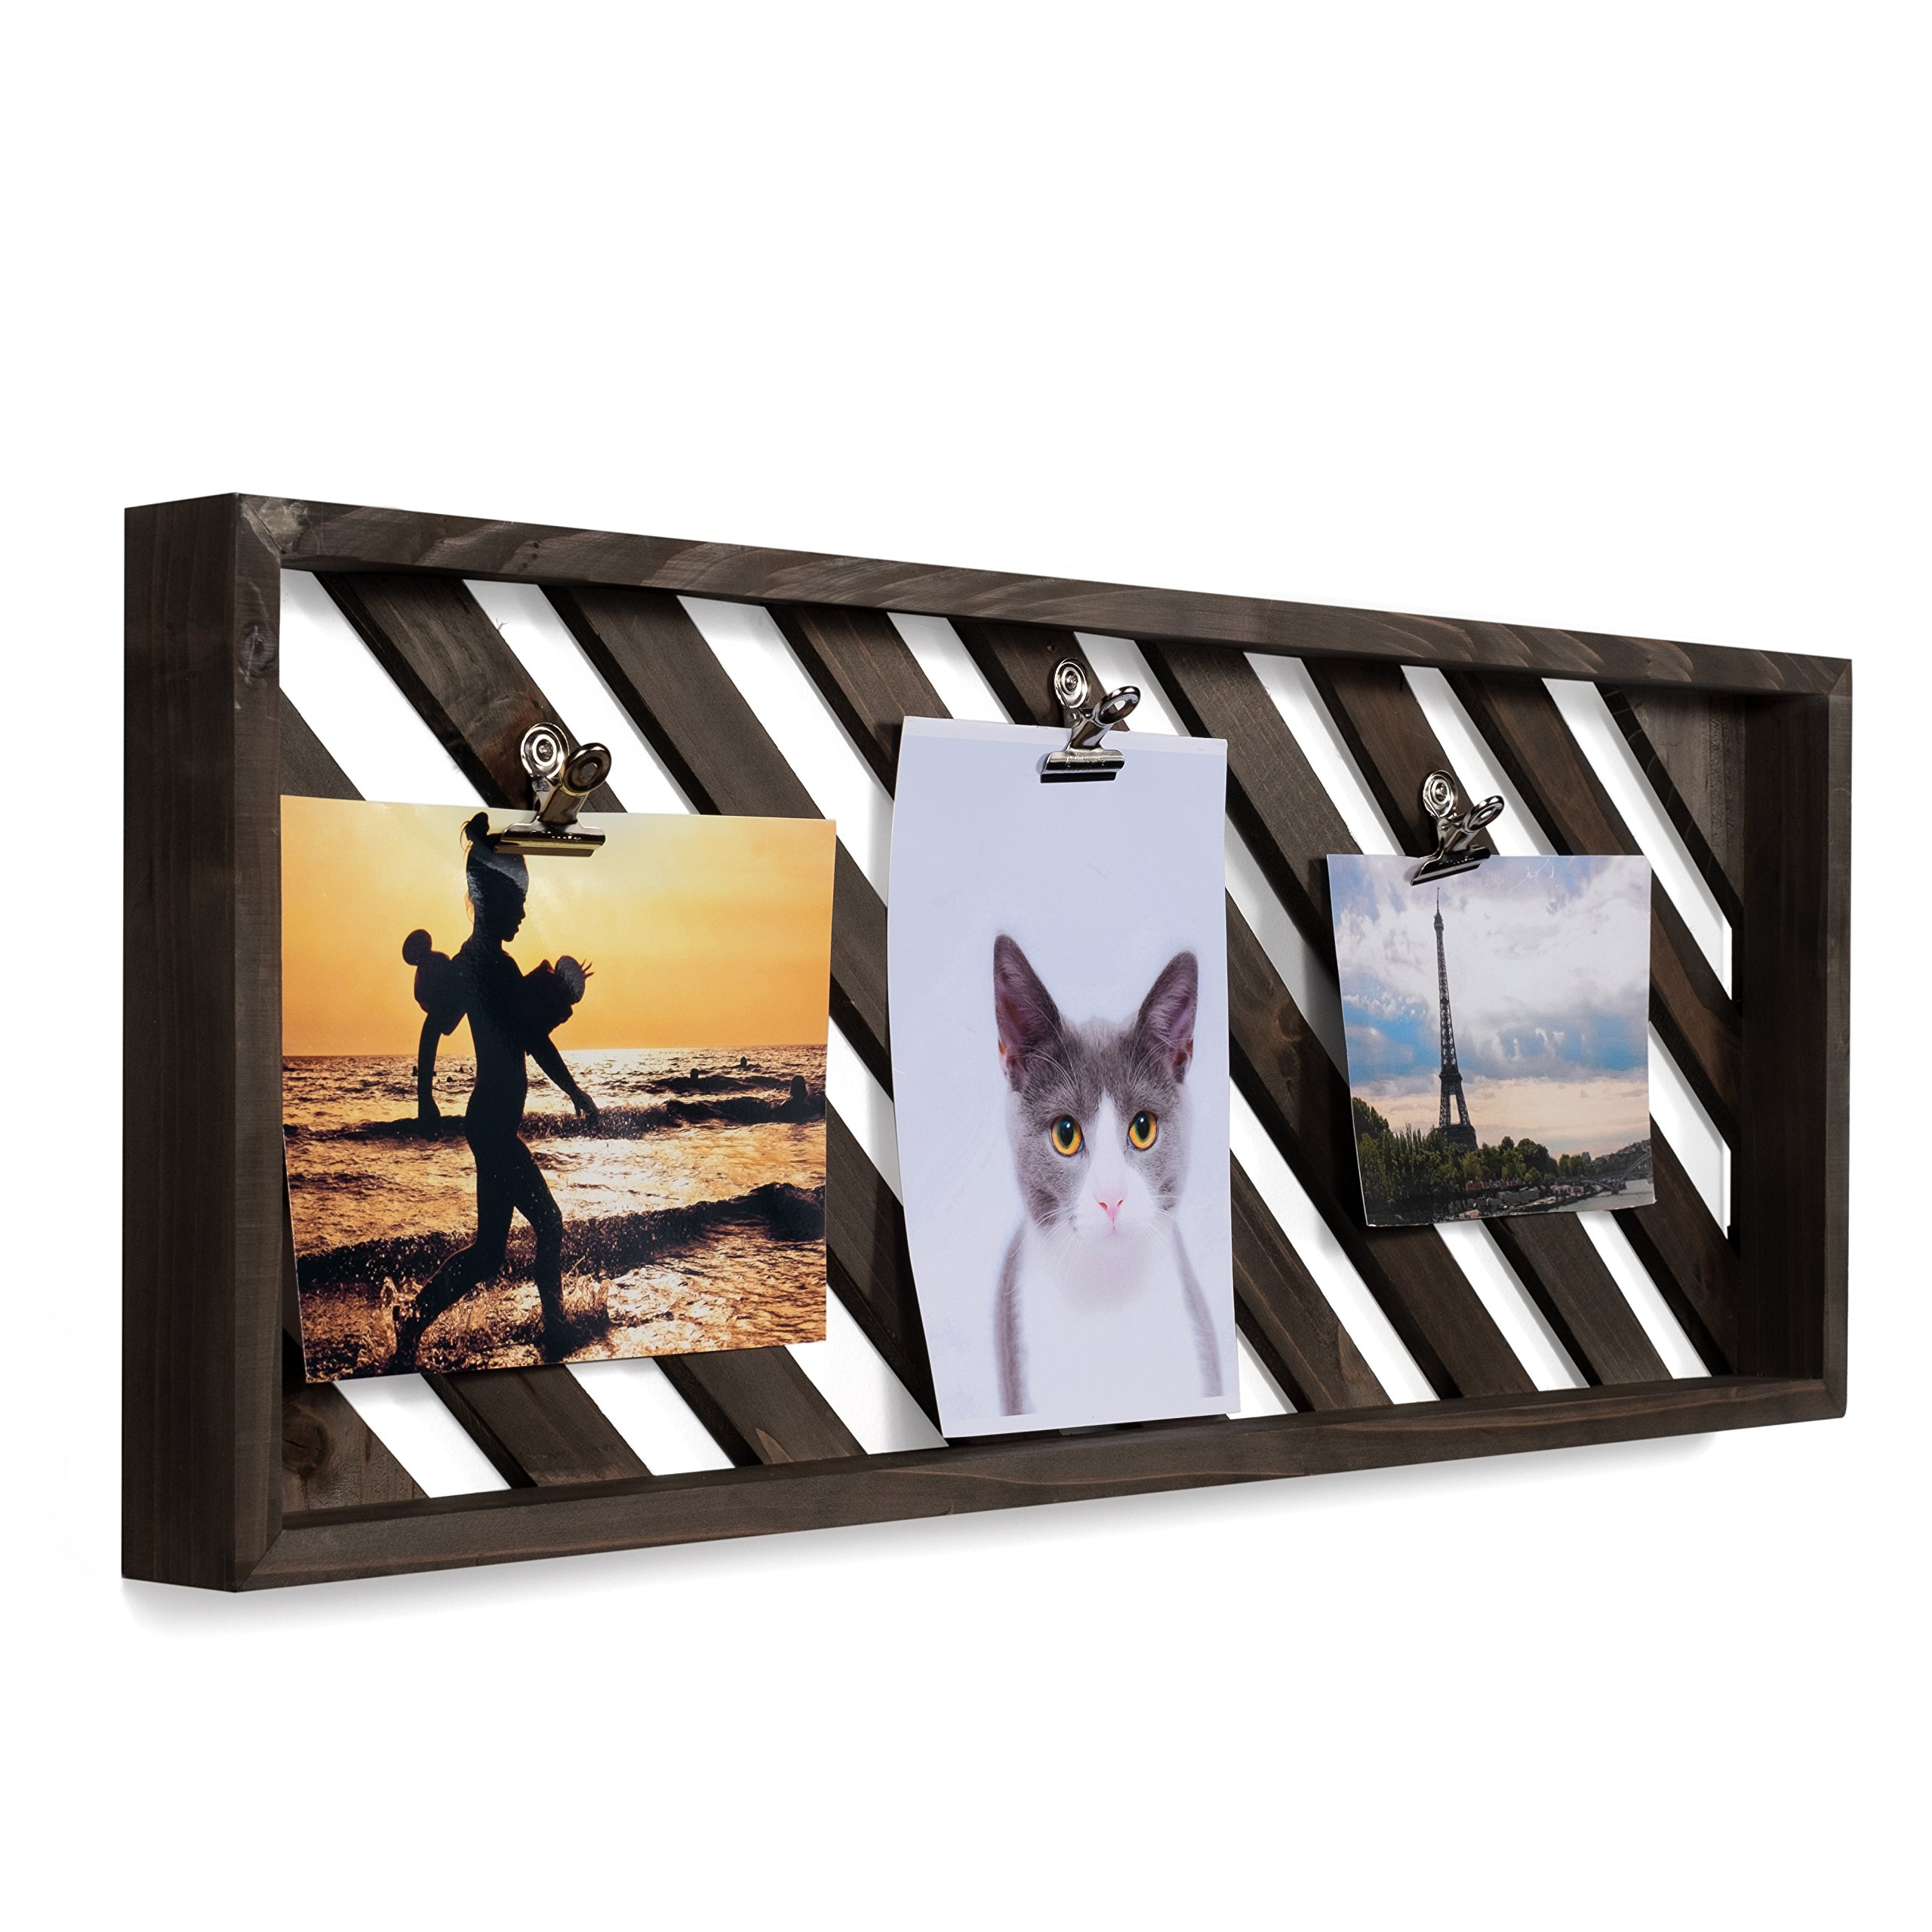 brightmaison Rustic Style 23 Inch Wooden Photo Display Board with 5 Clips (Gray)